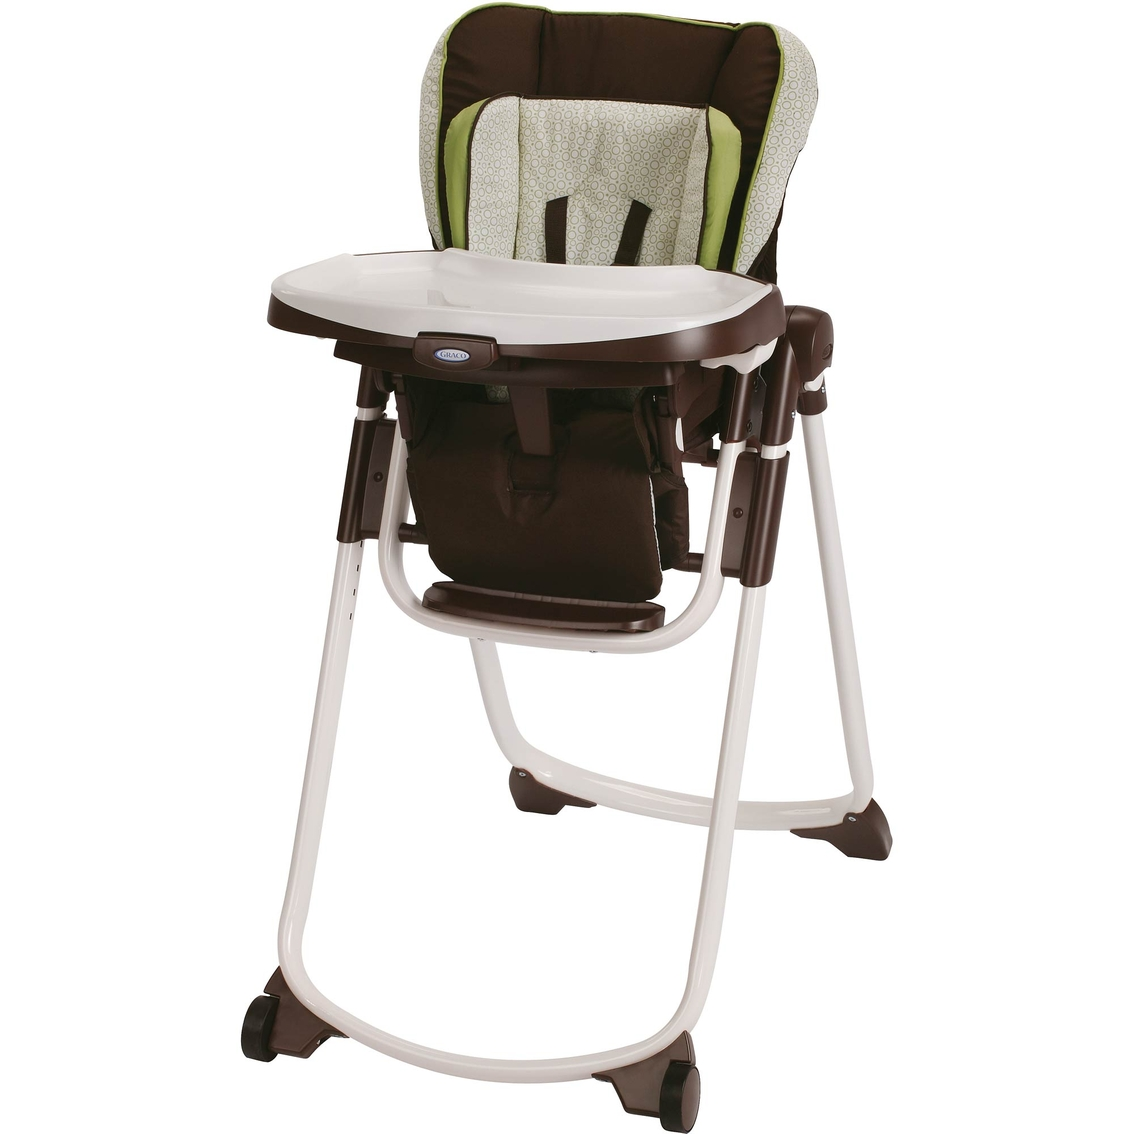 graco convertible high chair white wood kitchen chairs slim spaces highchair highchairs baby and toys